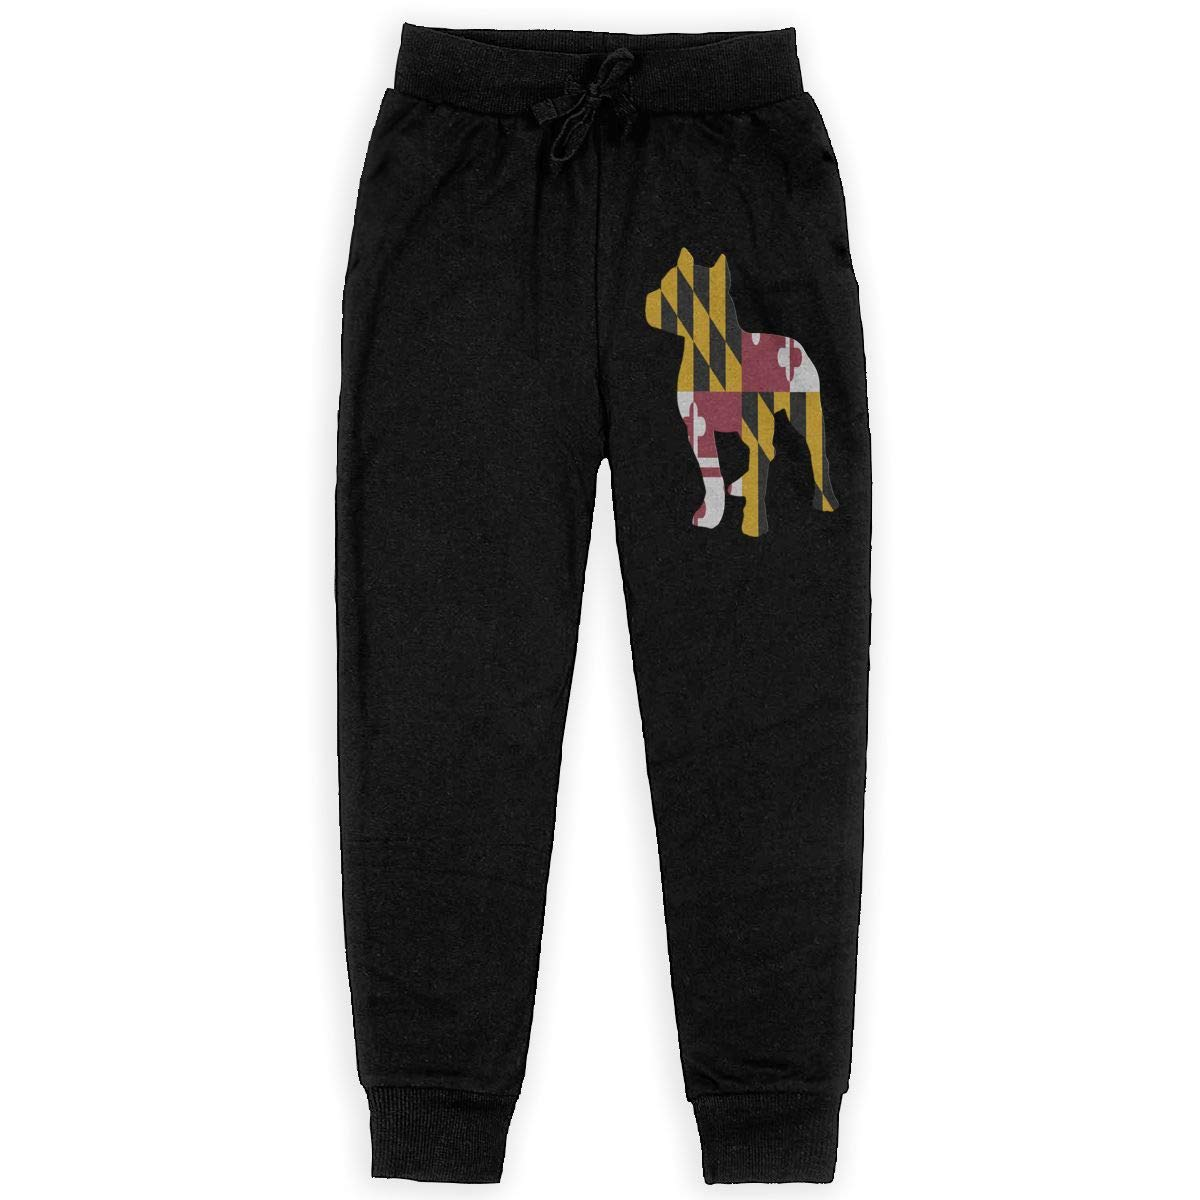 WYZVK22 Patriotic Pitbull Maryland Flag Soft//Cozy Sweatpants Youth Athletic Pants for Teenager Girls